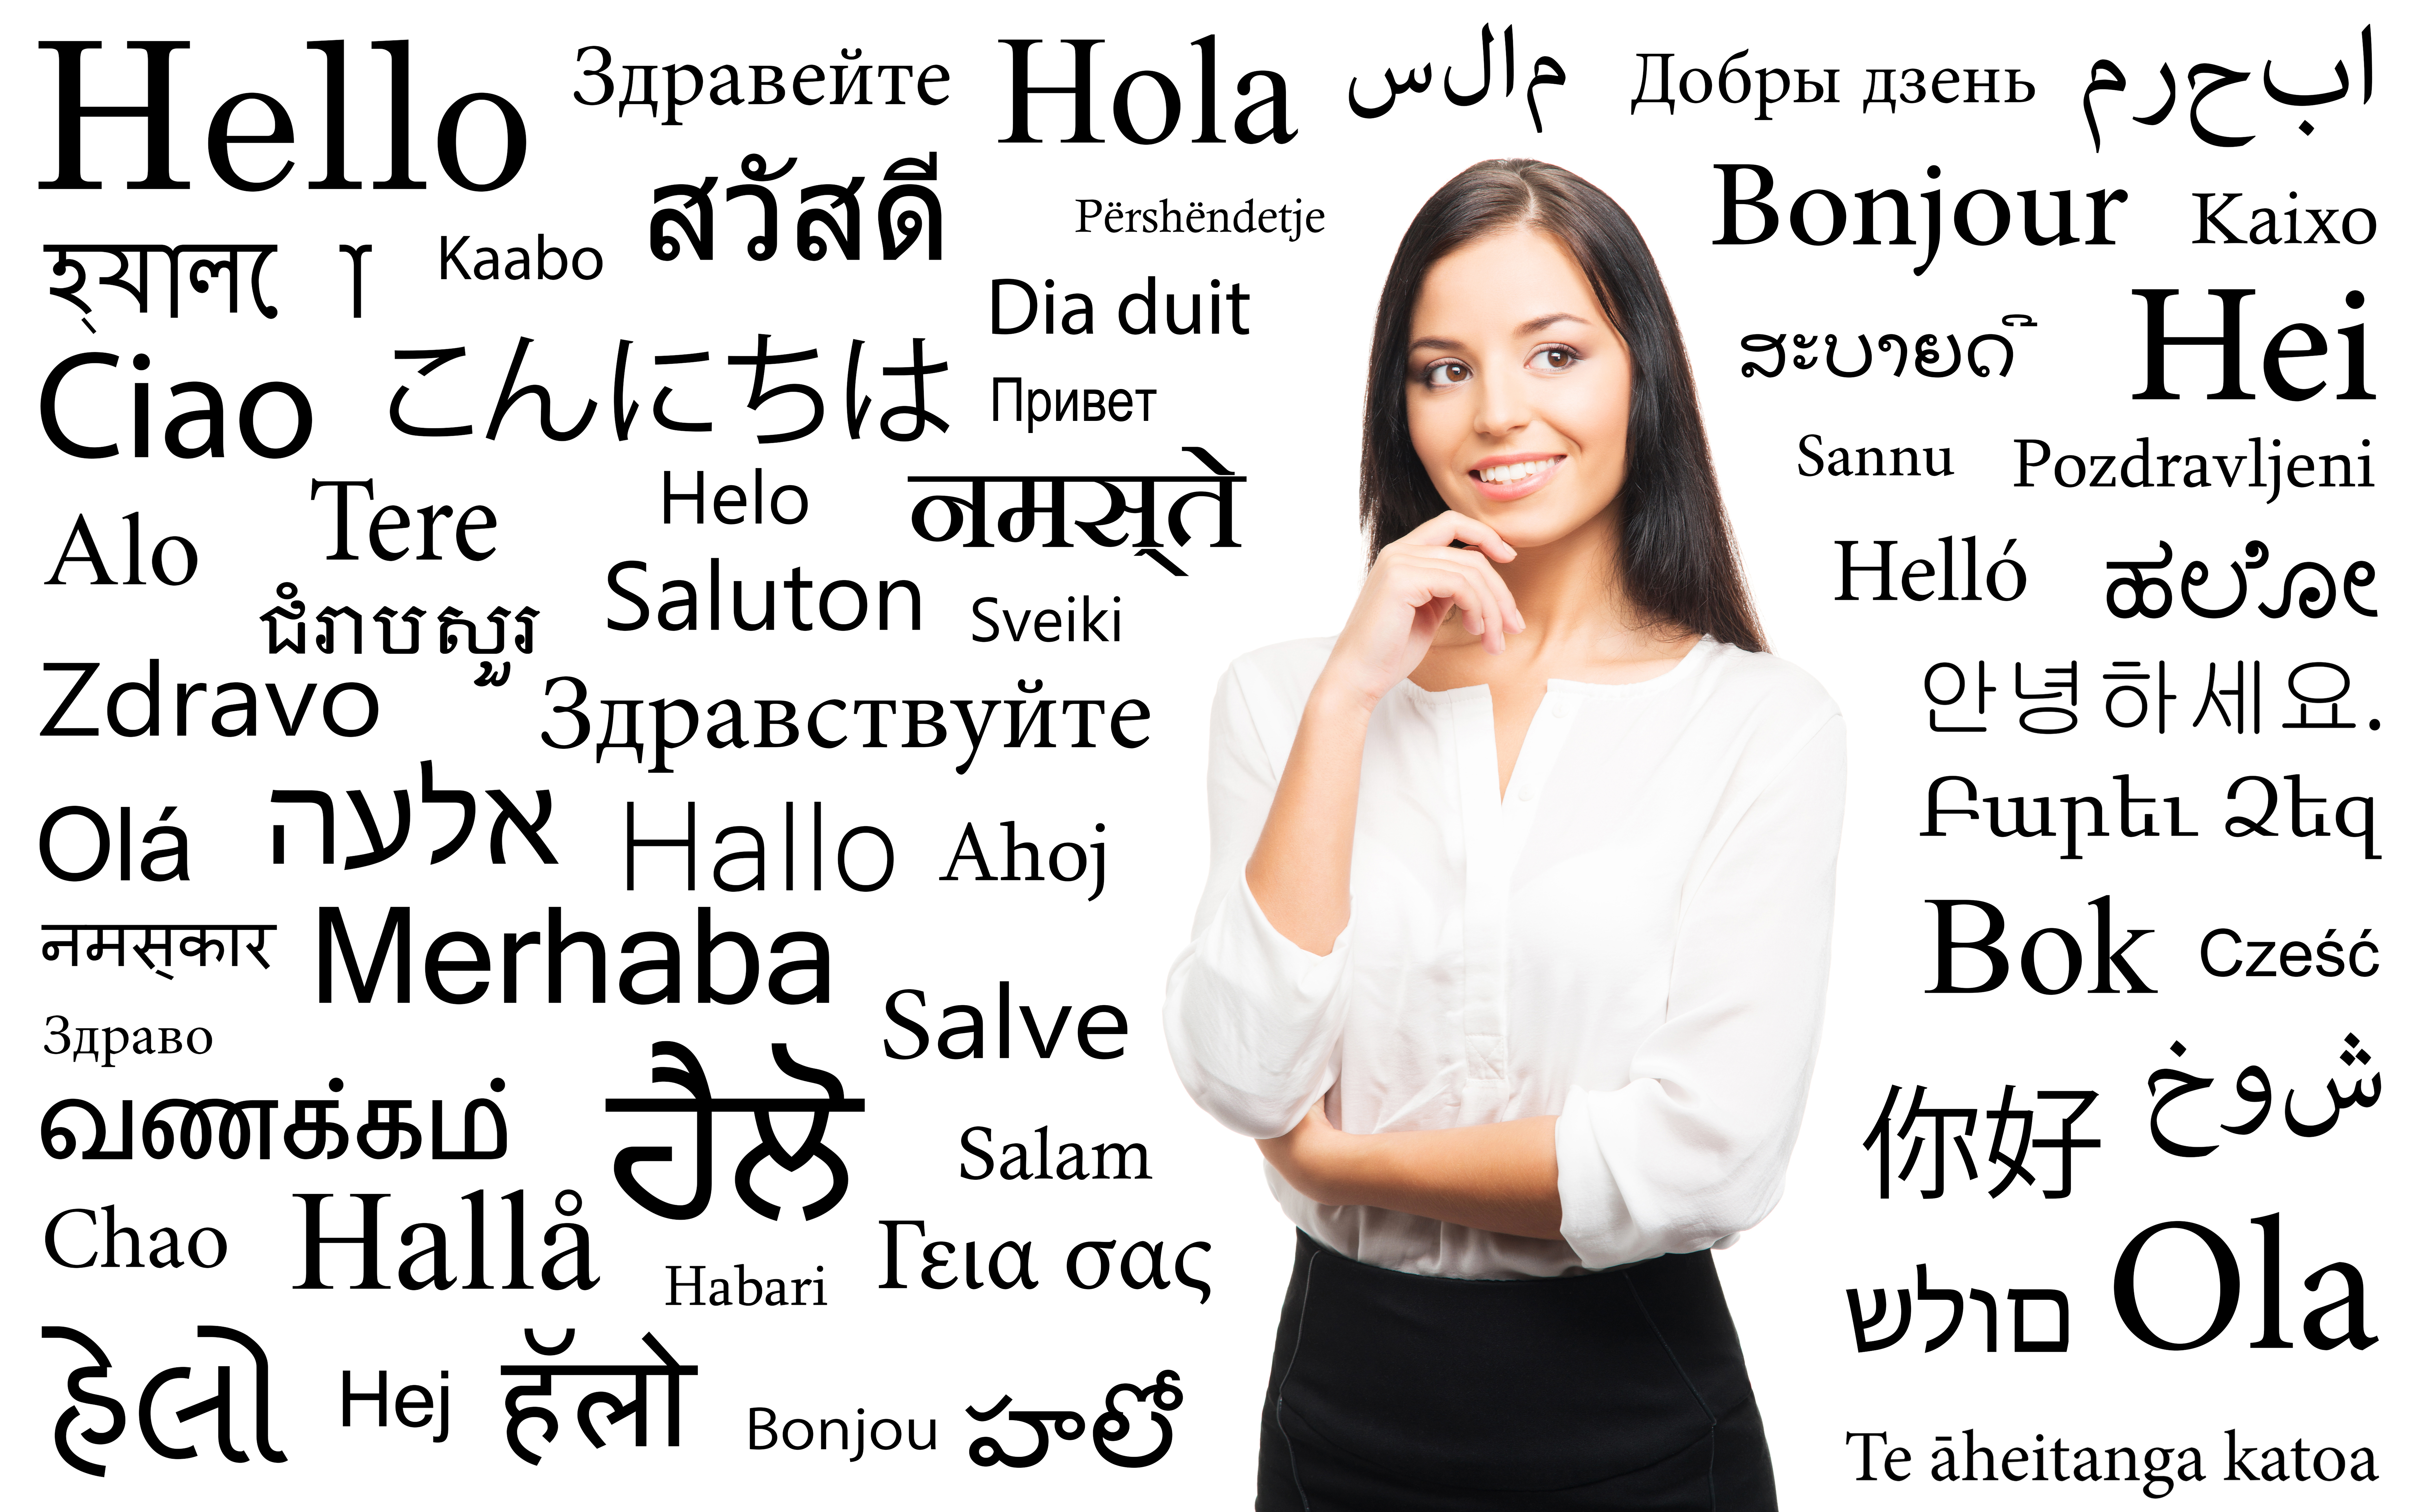 MMem 0088: Learning words in languages with other alphabets